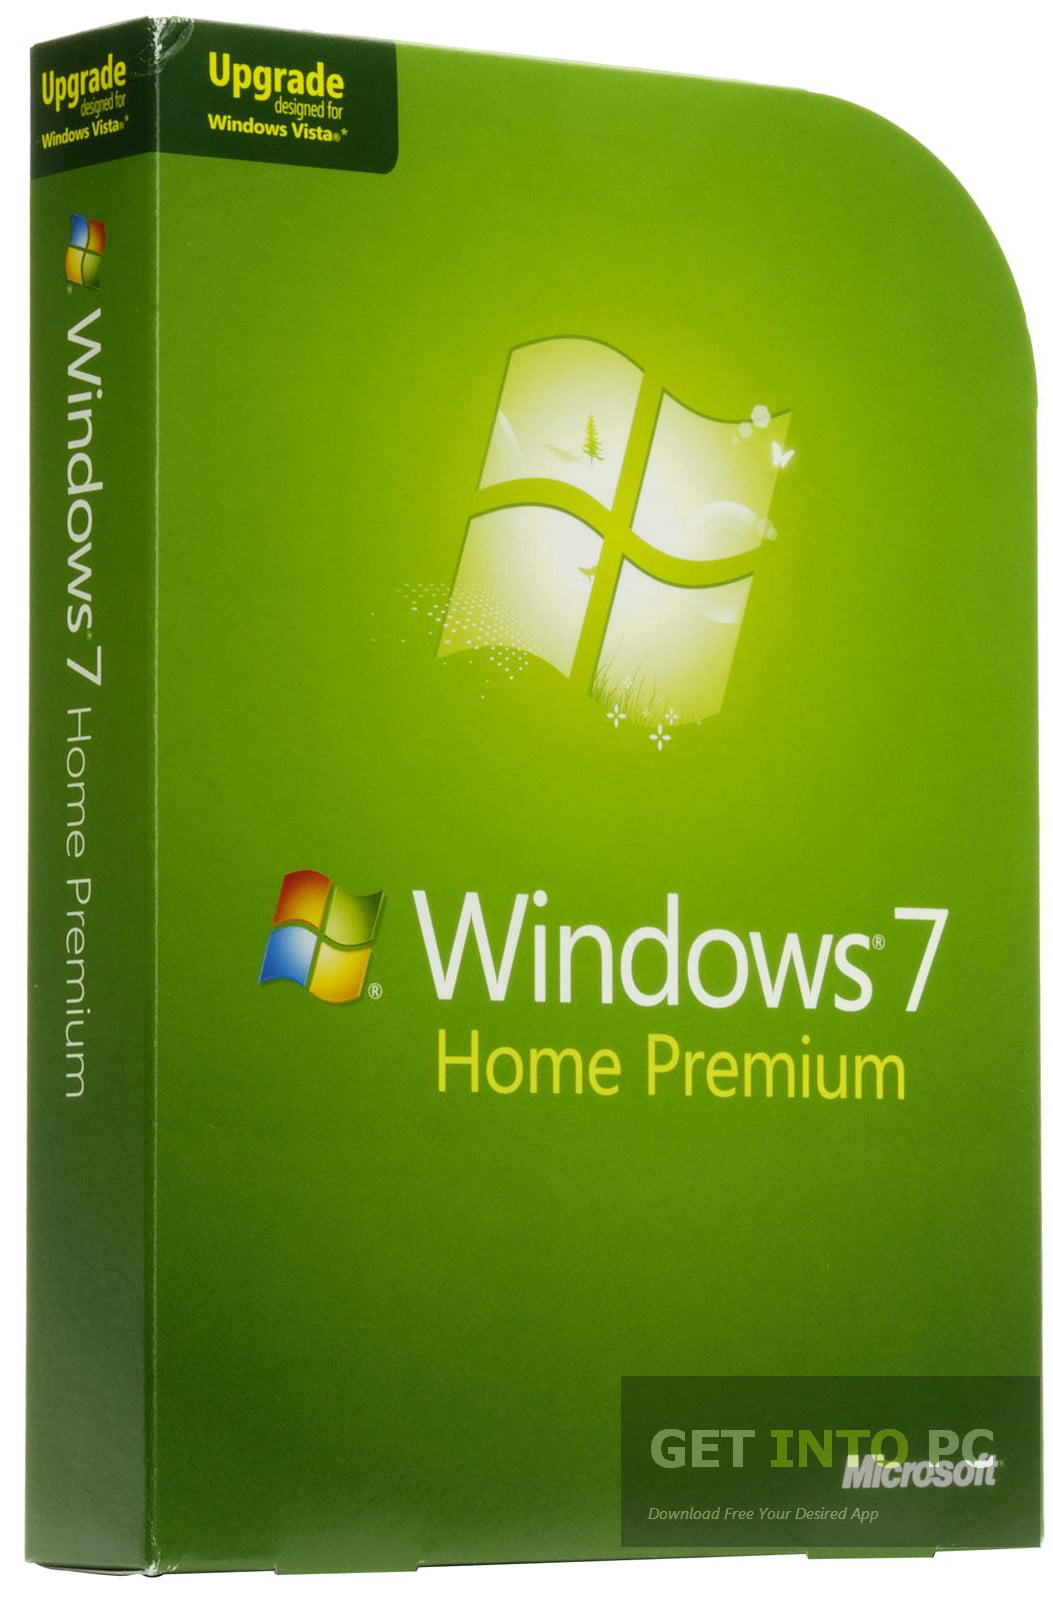 Windows 7 premium home. Windows 7 home premium product key updated.